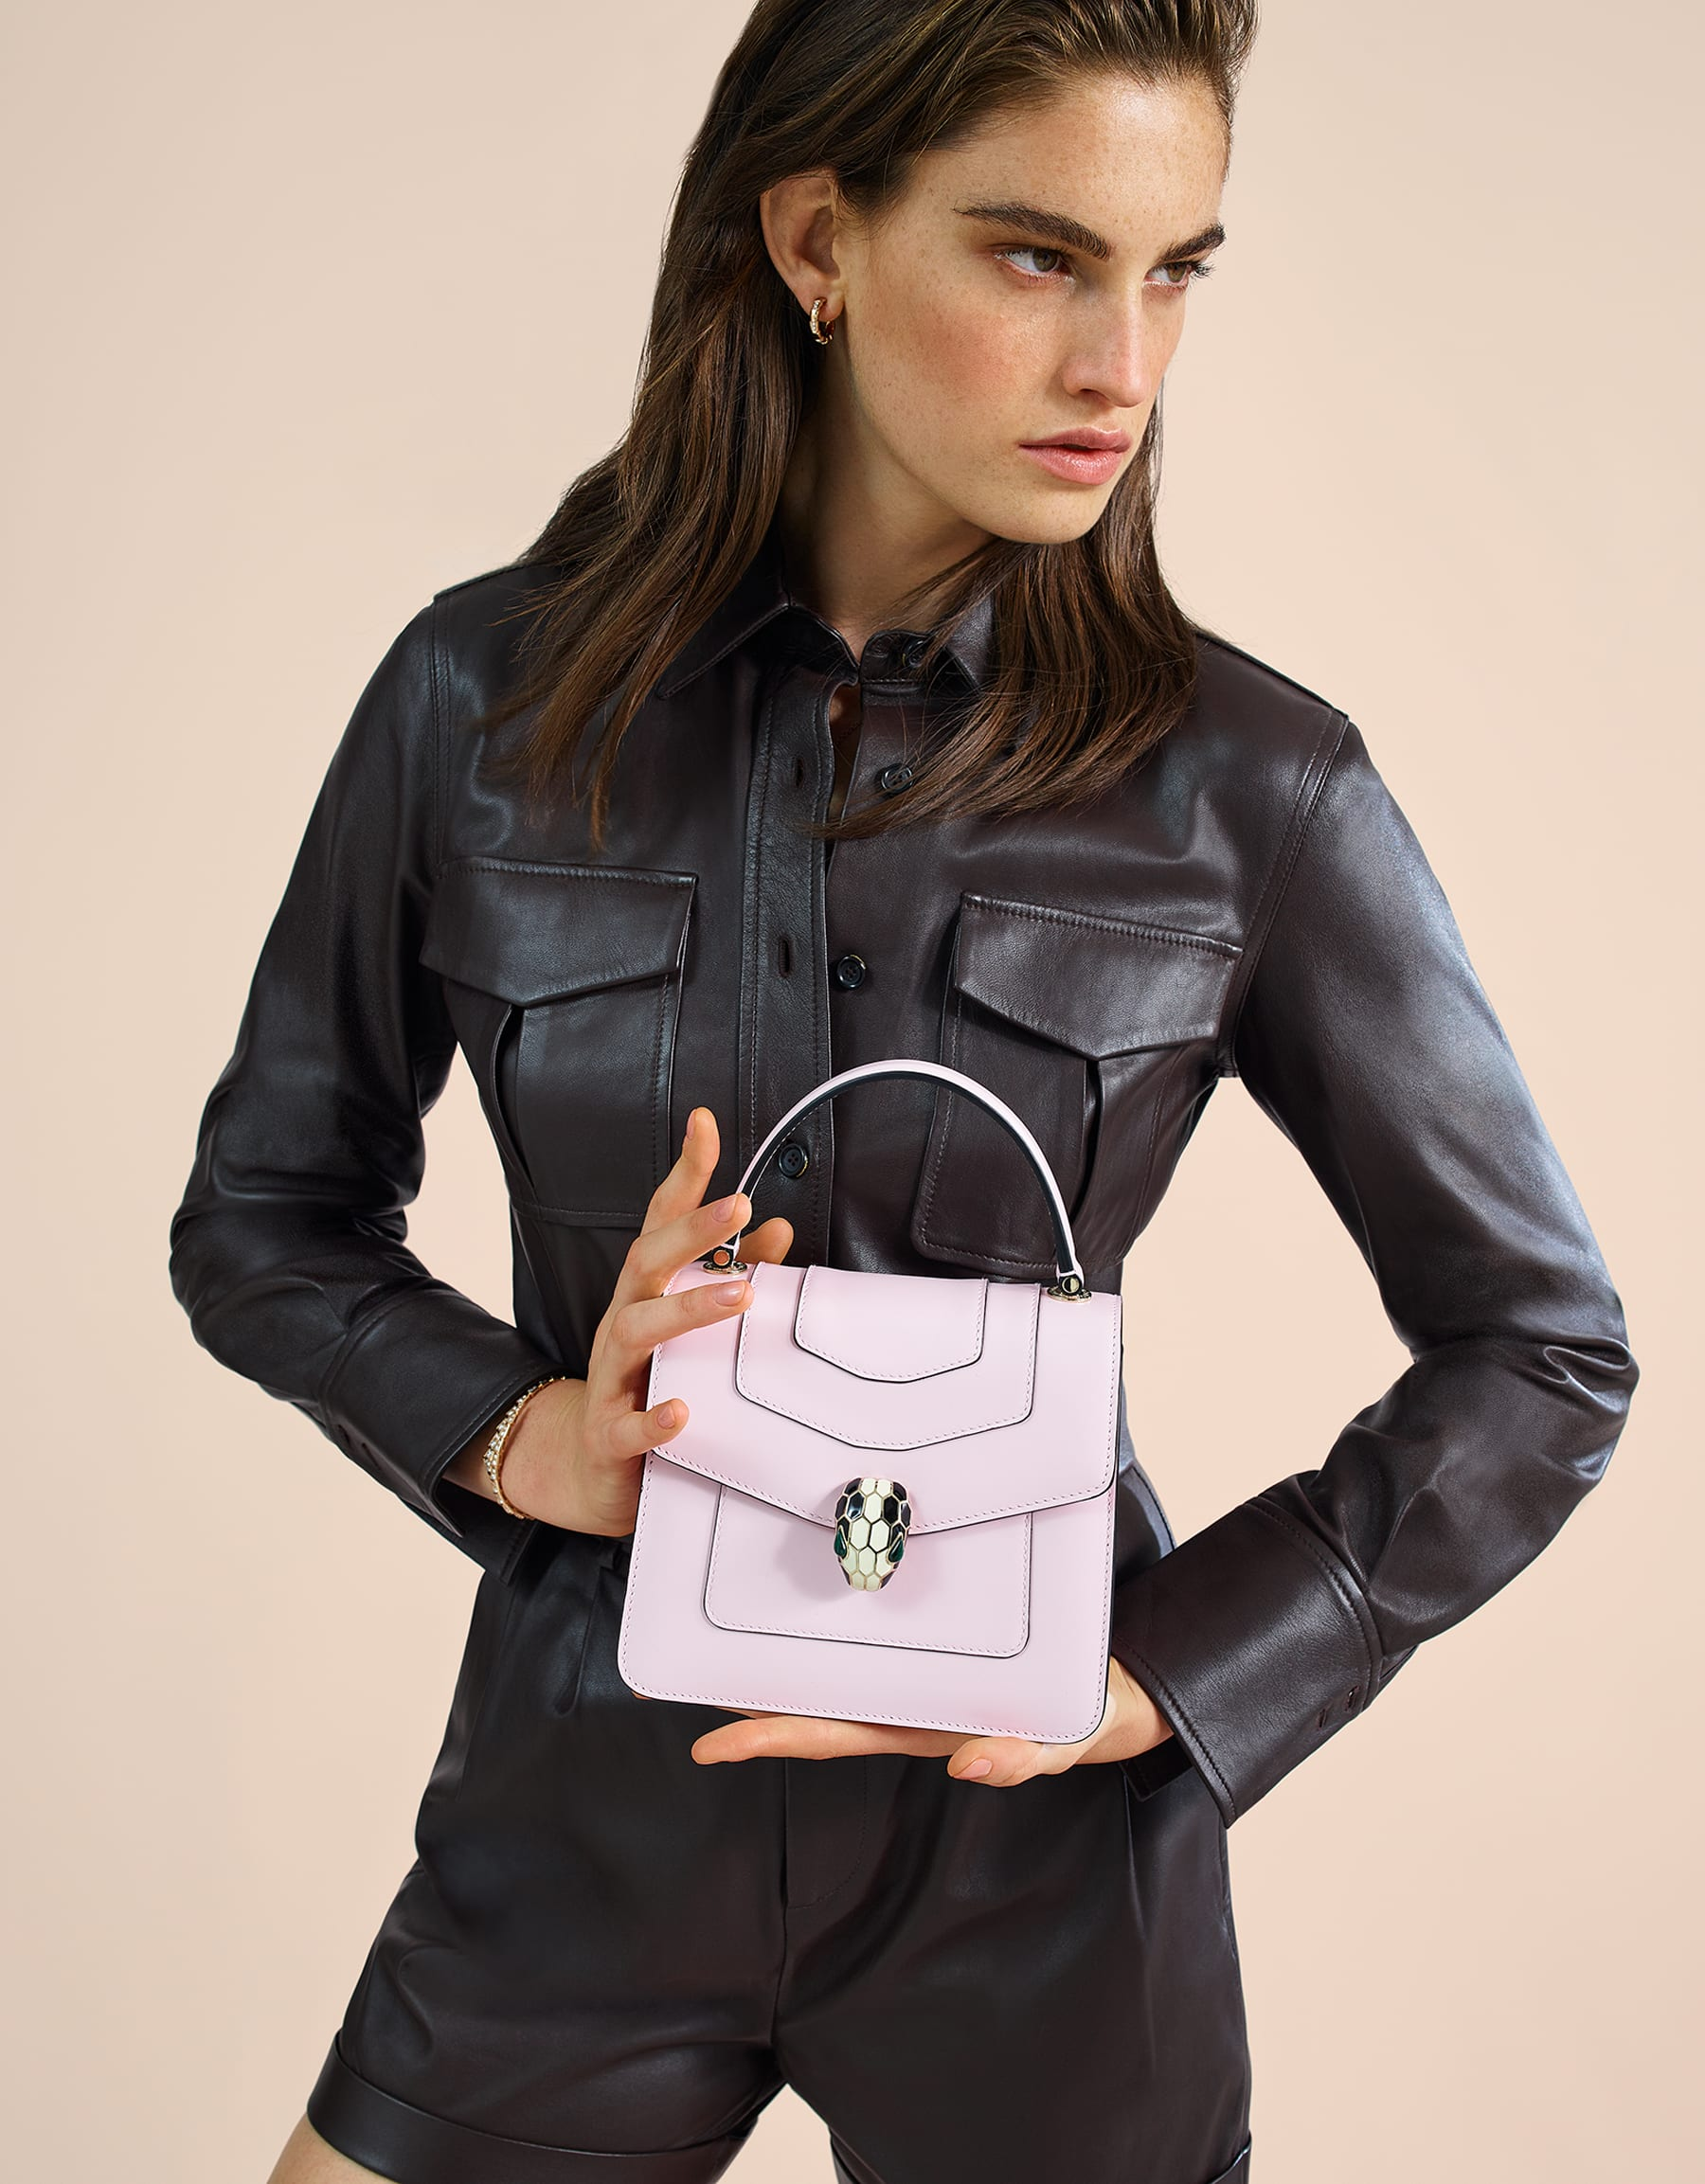 Serpenti Forever crossbody bag in rosa di francia calf leather. Iconic snakehead closure in light gold plated brass embellished with black and white enamel and green malachite eyes. 288712 image 5